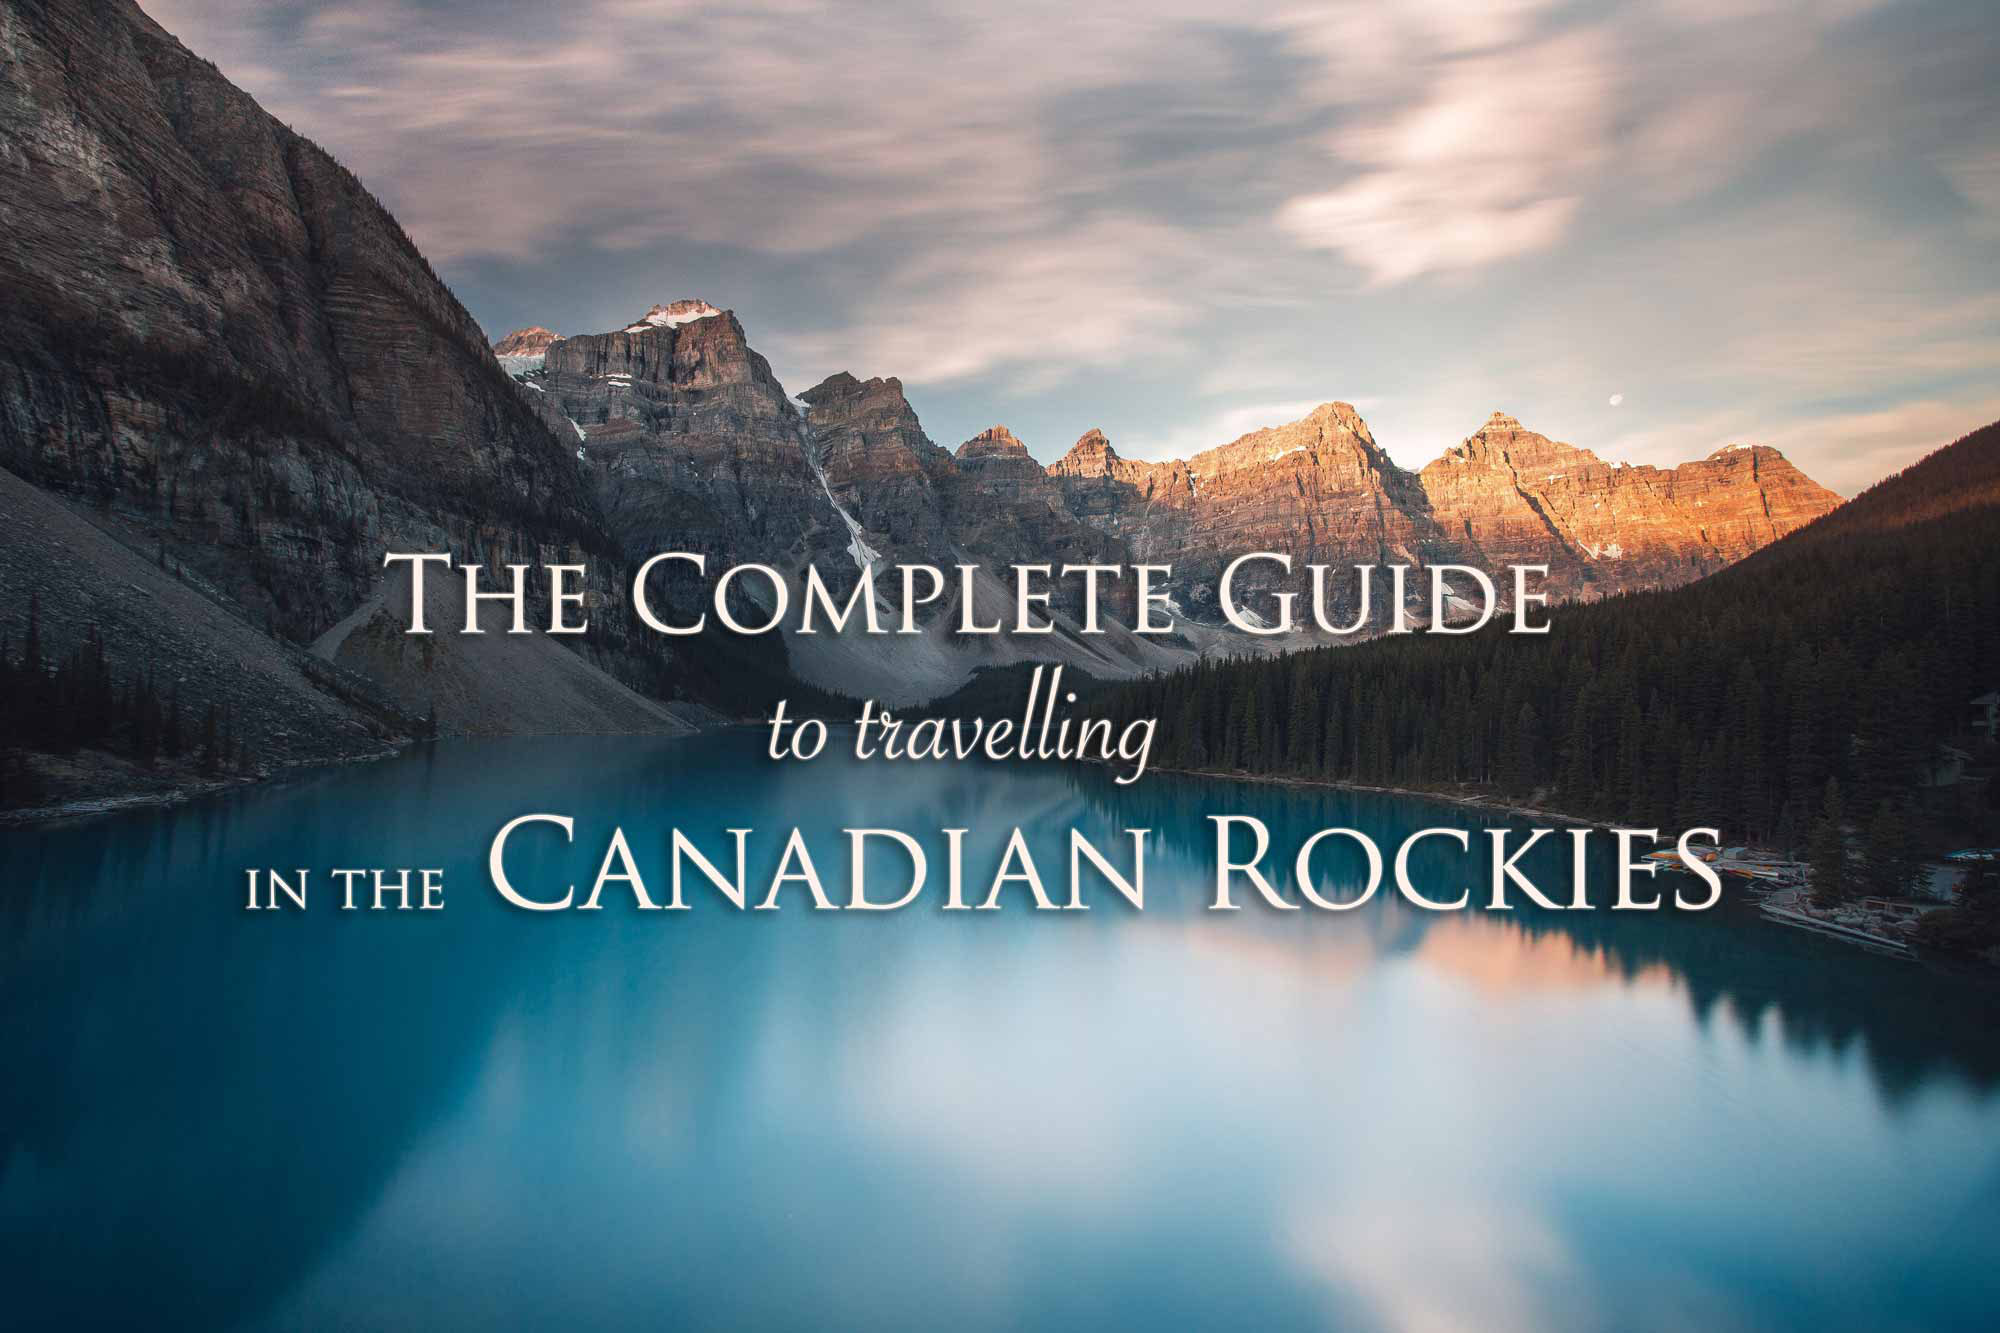 The Complete Guide to Travelling in the Canadian Rockies - Dreaming